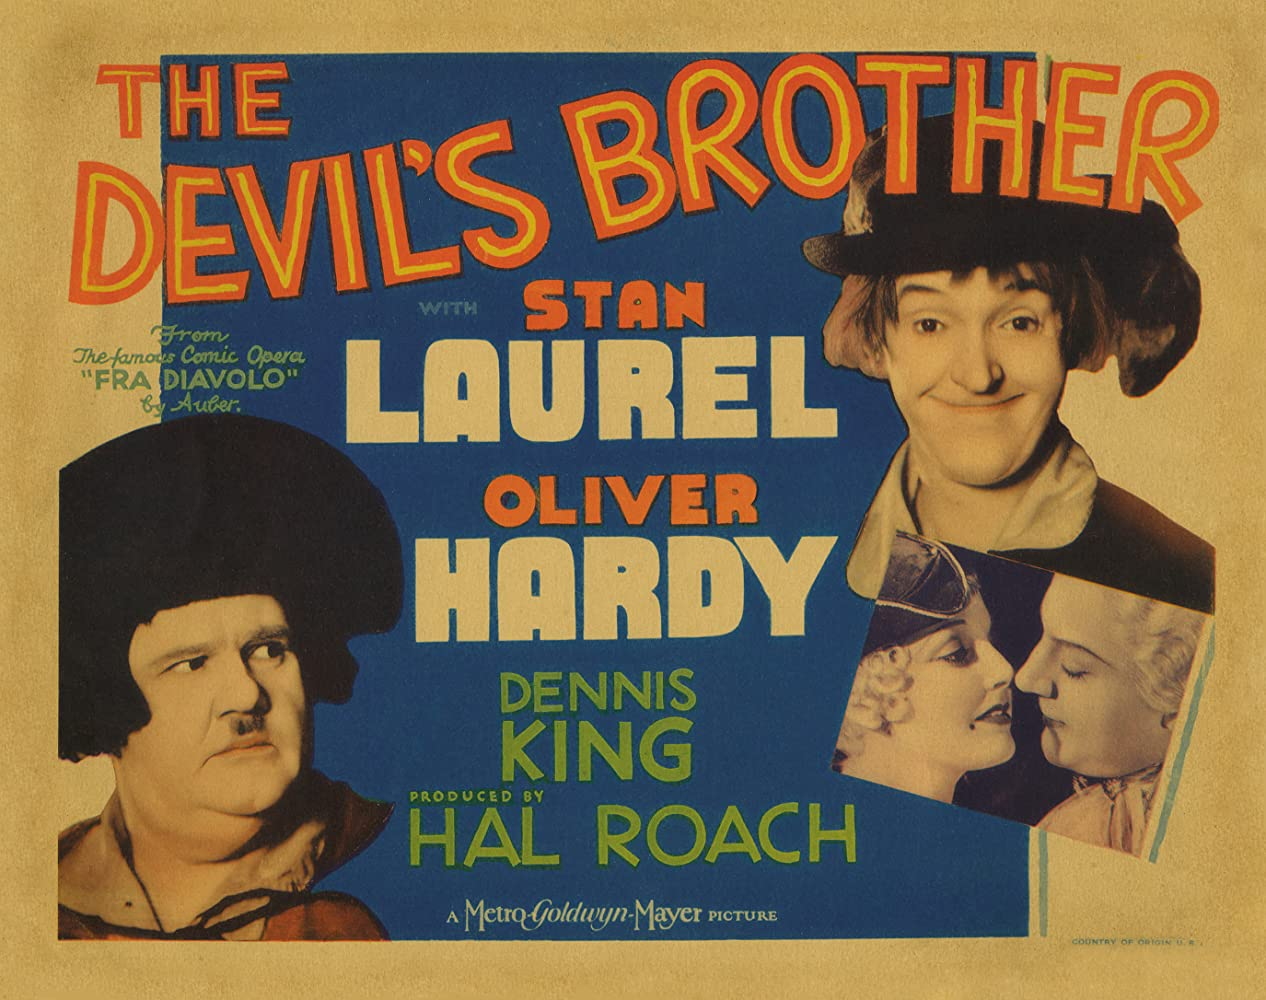 Oliver Hardy, Dennis King, Stan Laurel, and Thelma Todd in The Devil's Brother (1933)